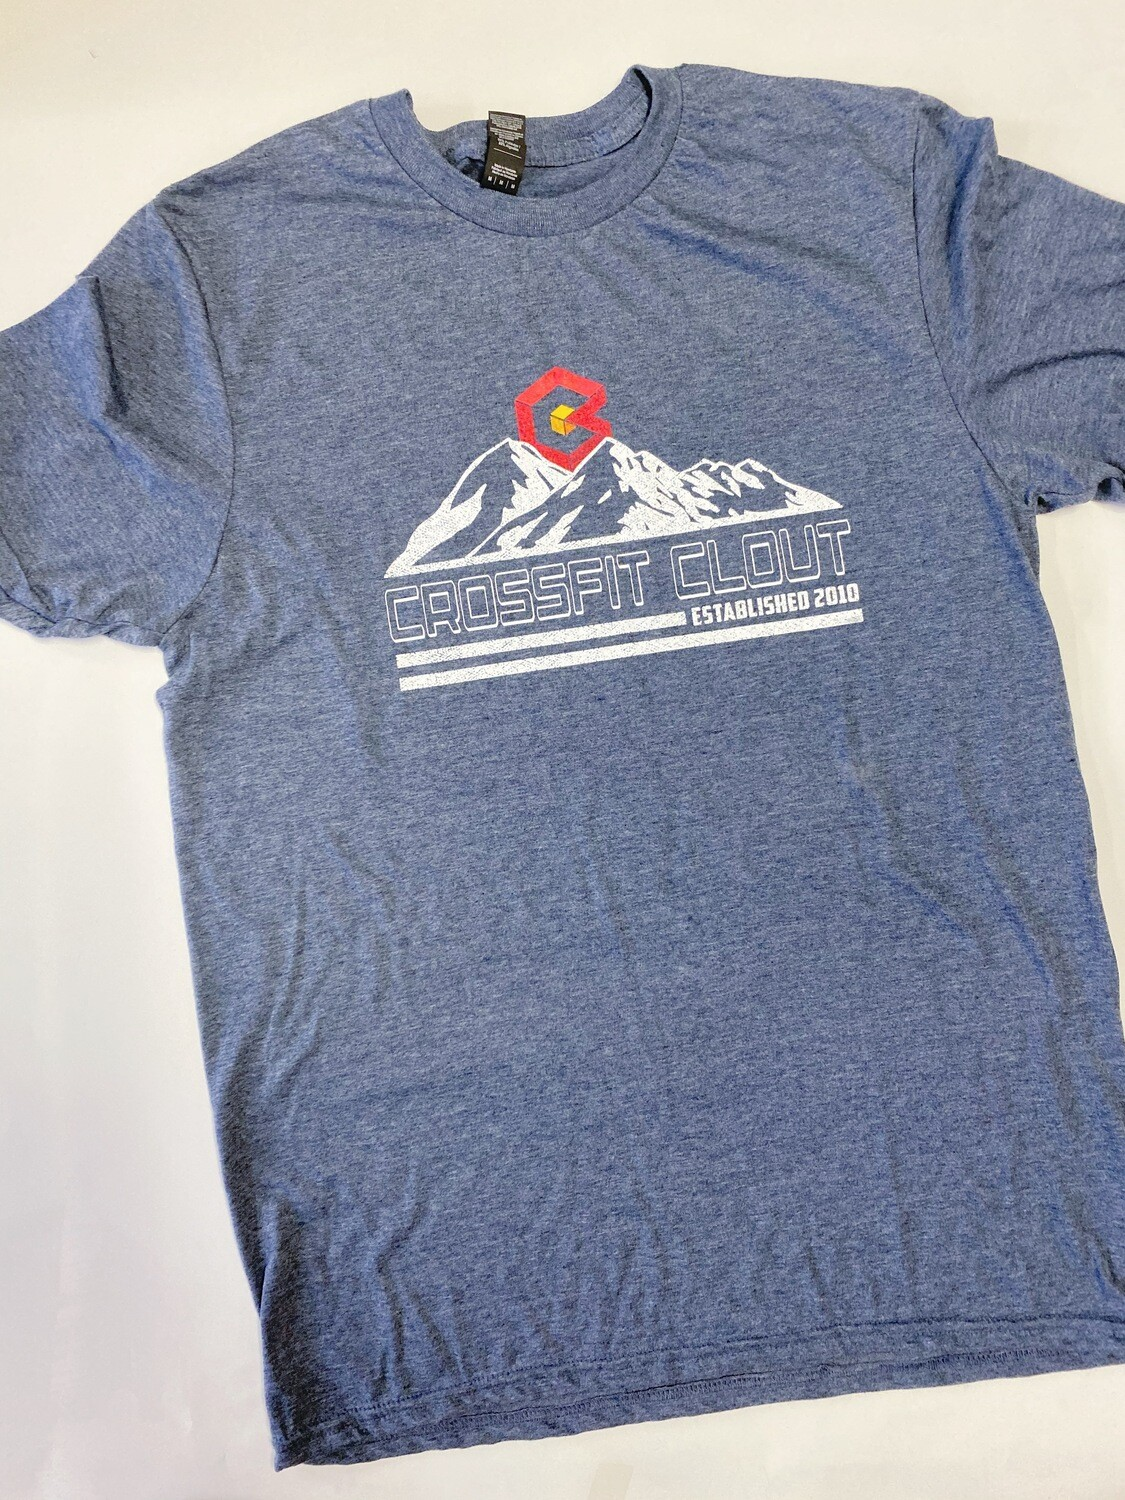 CrossFit Clout (mountains) short sleeve T